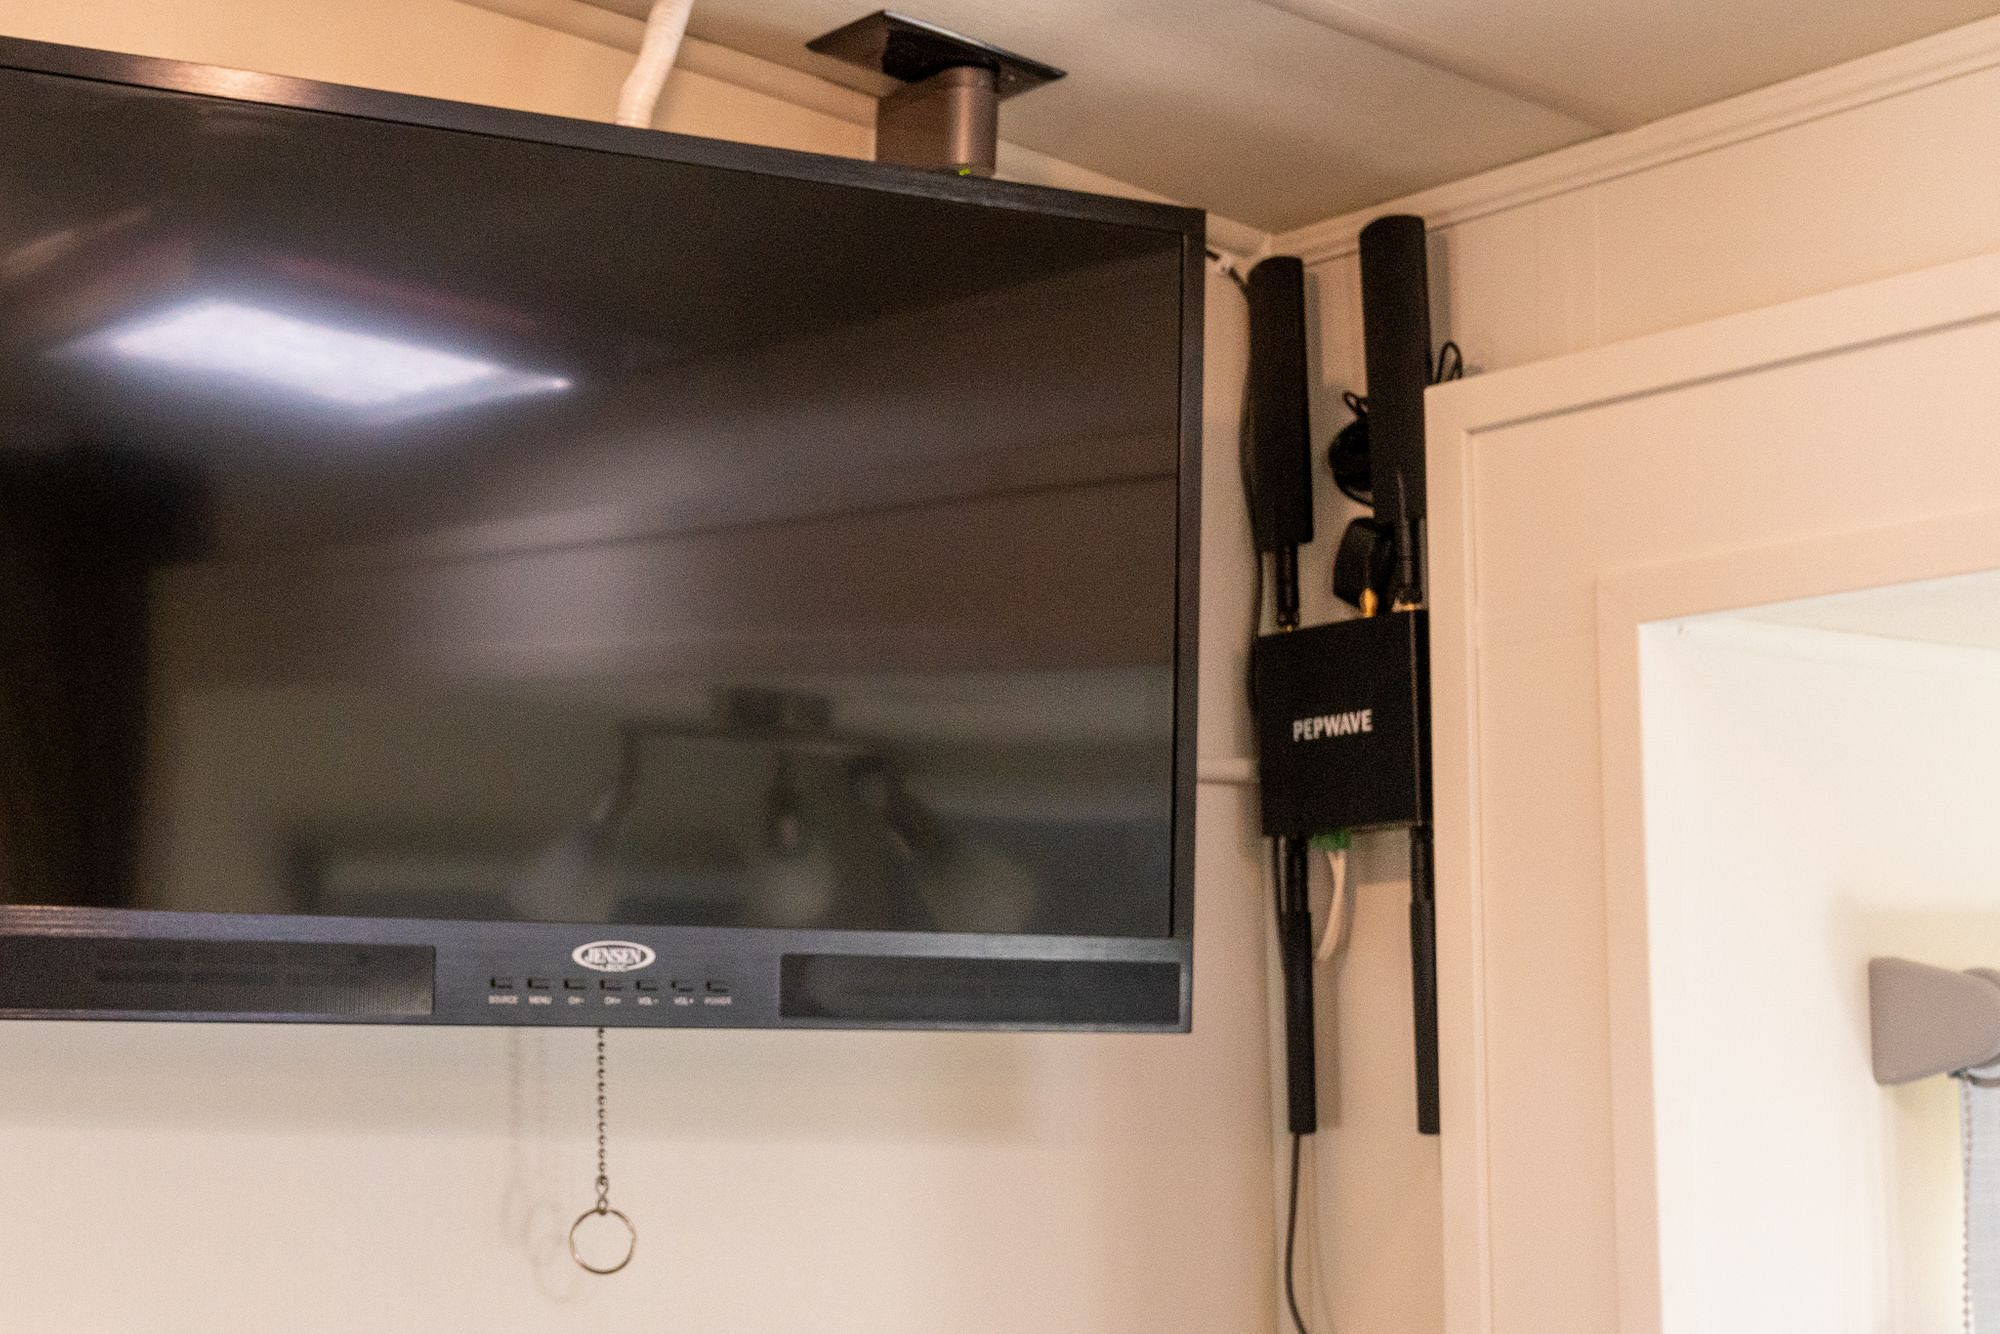 Pepwave MAX BR1 Wall Mount RV